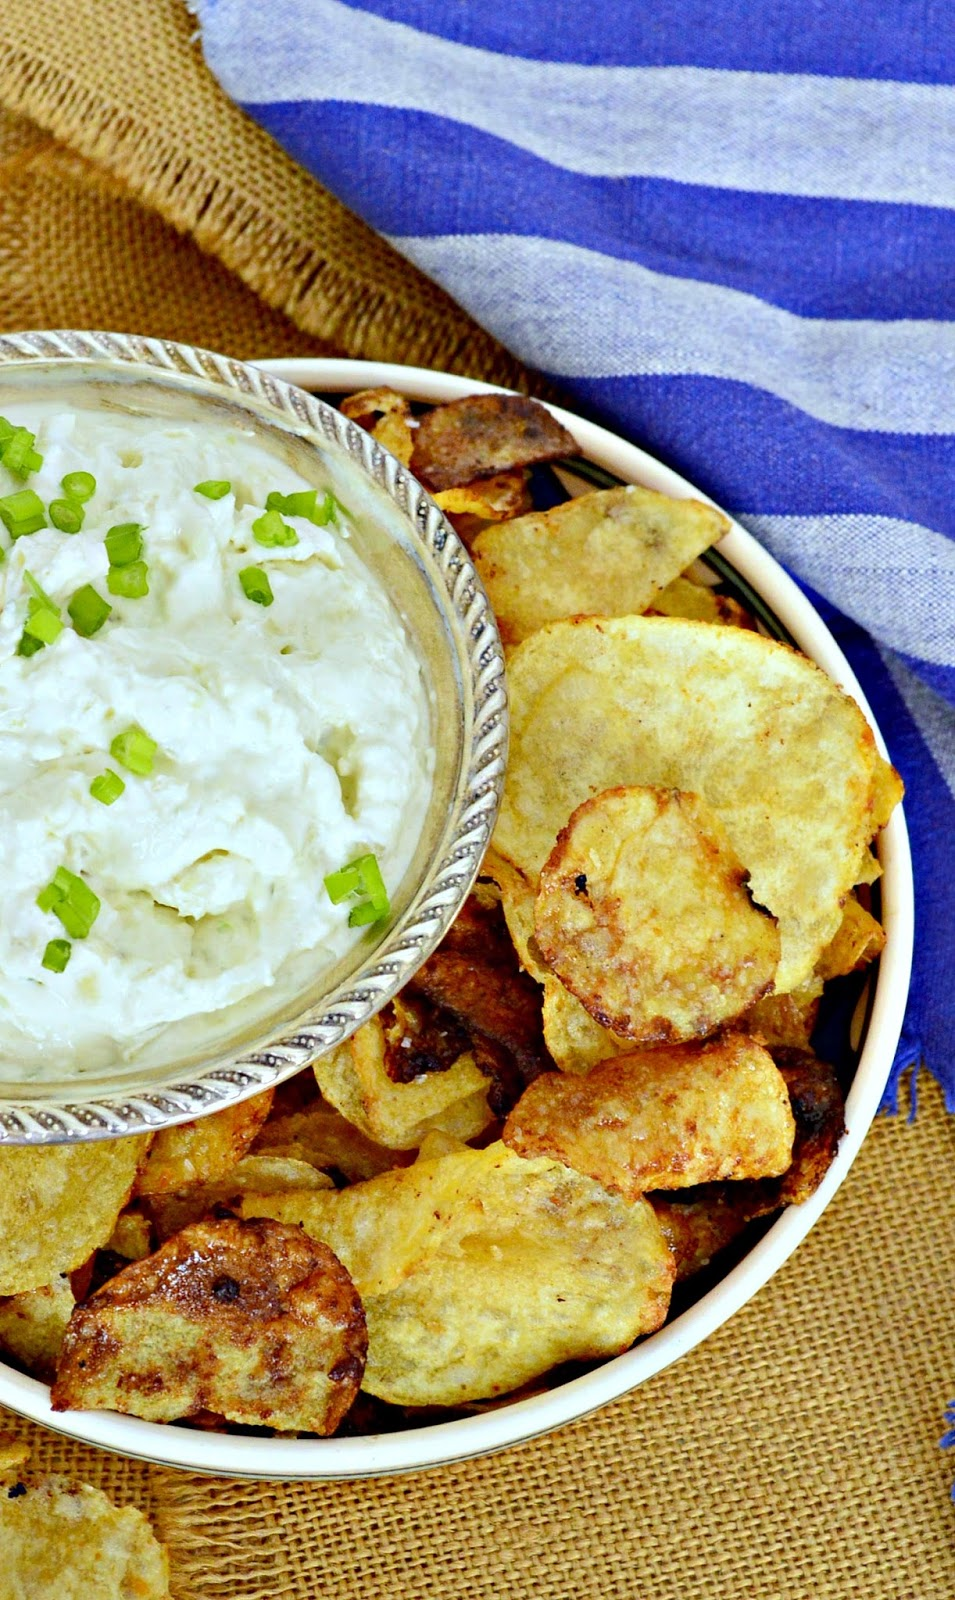 Beer and Honey Potato Chips made with store bought kettle chips are out of this world! Serve with my favorite onion dip and you have my favorite junk food. #potato chips #onion dip www.thisishowicook.com